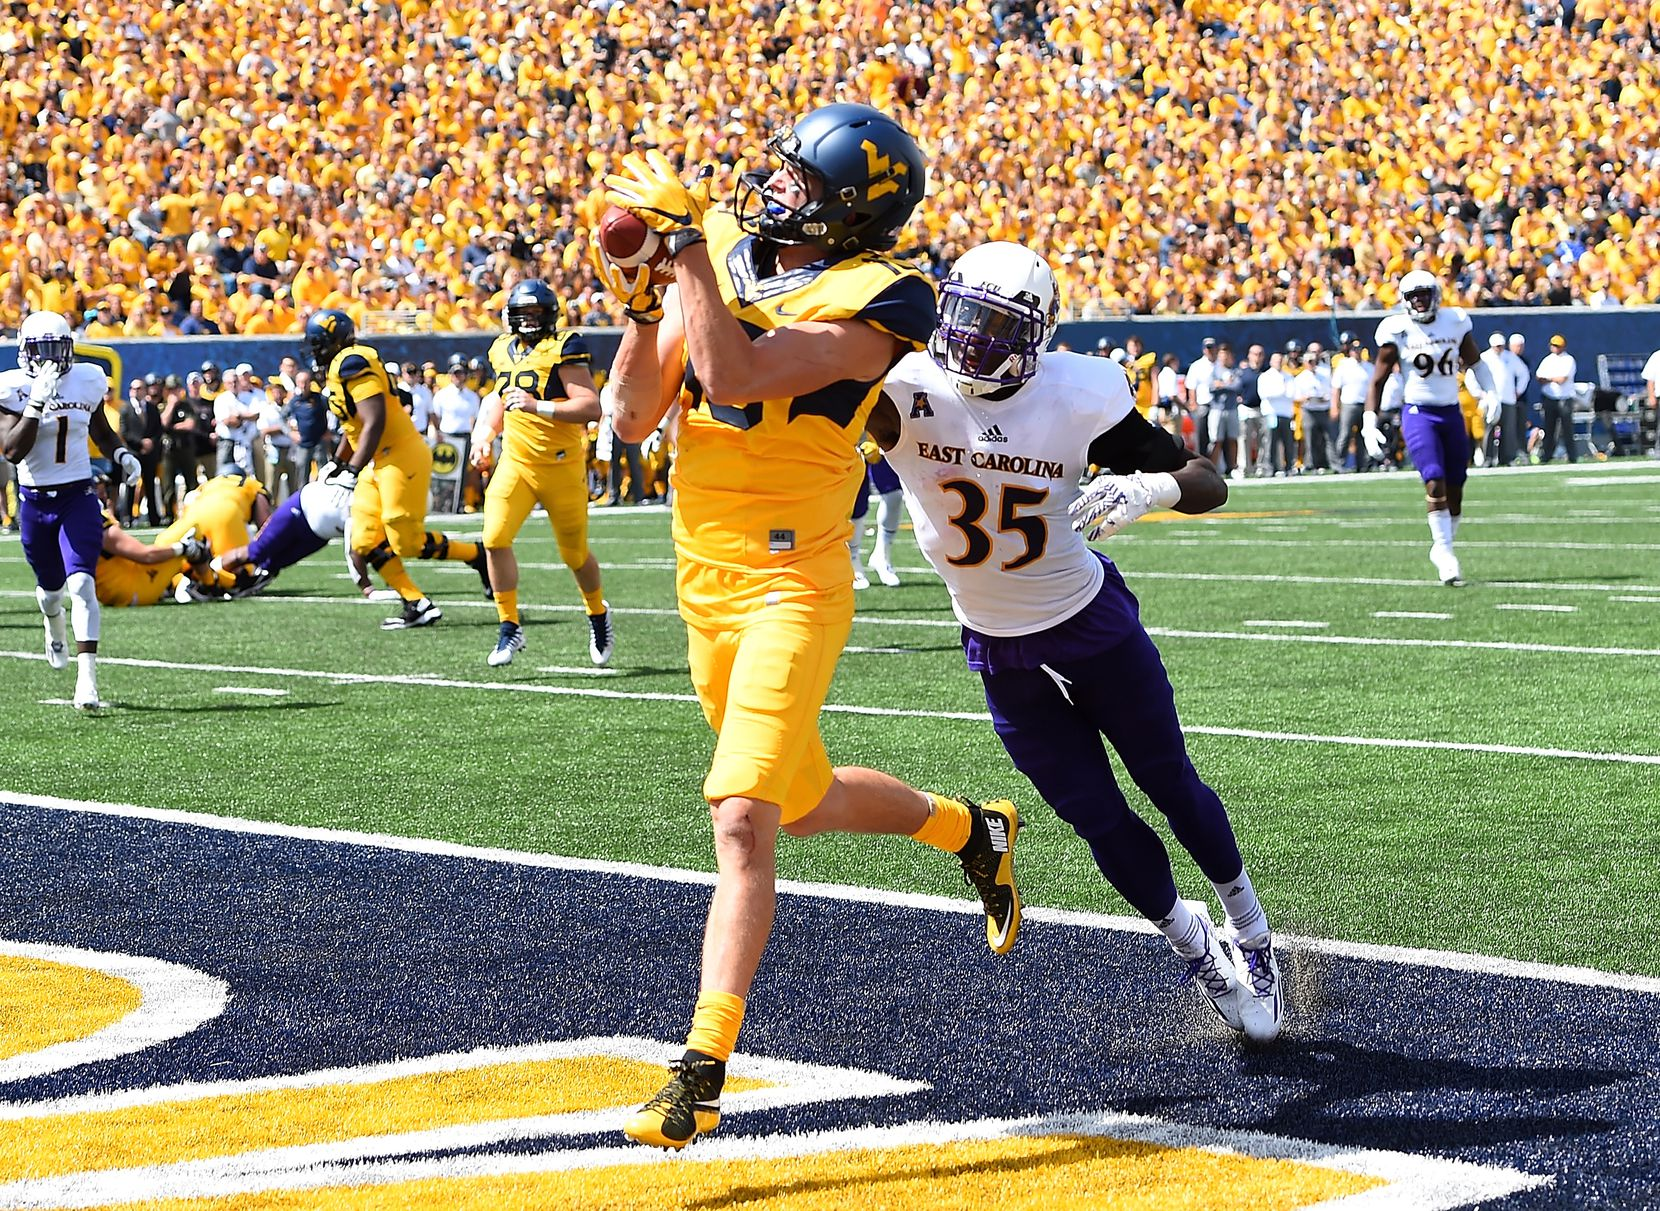 FILE - West Virginia's David Sills V (13) makes a touchdown catch in front of East Carolina's Chris Love (35) during the second quarter of a game at Mountaineer Field on Sept. 9, 2017, in Morgantown, W.Va. (Photo by Joe Sargent/Getty Images)